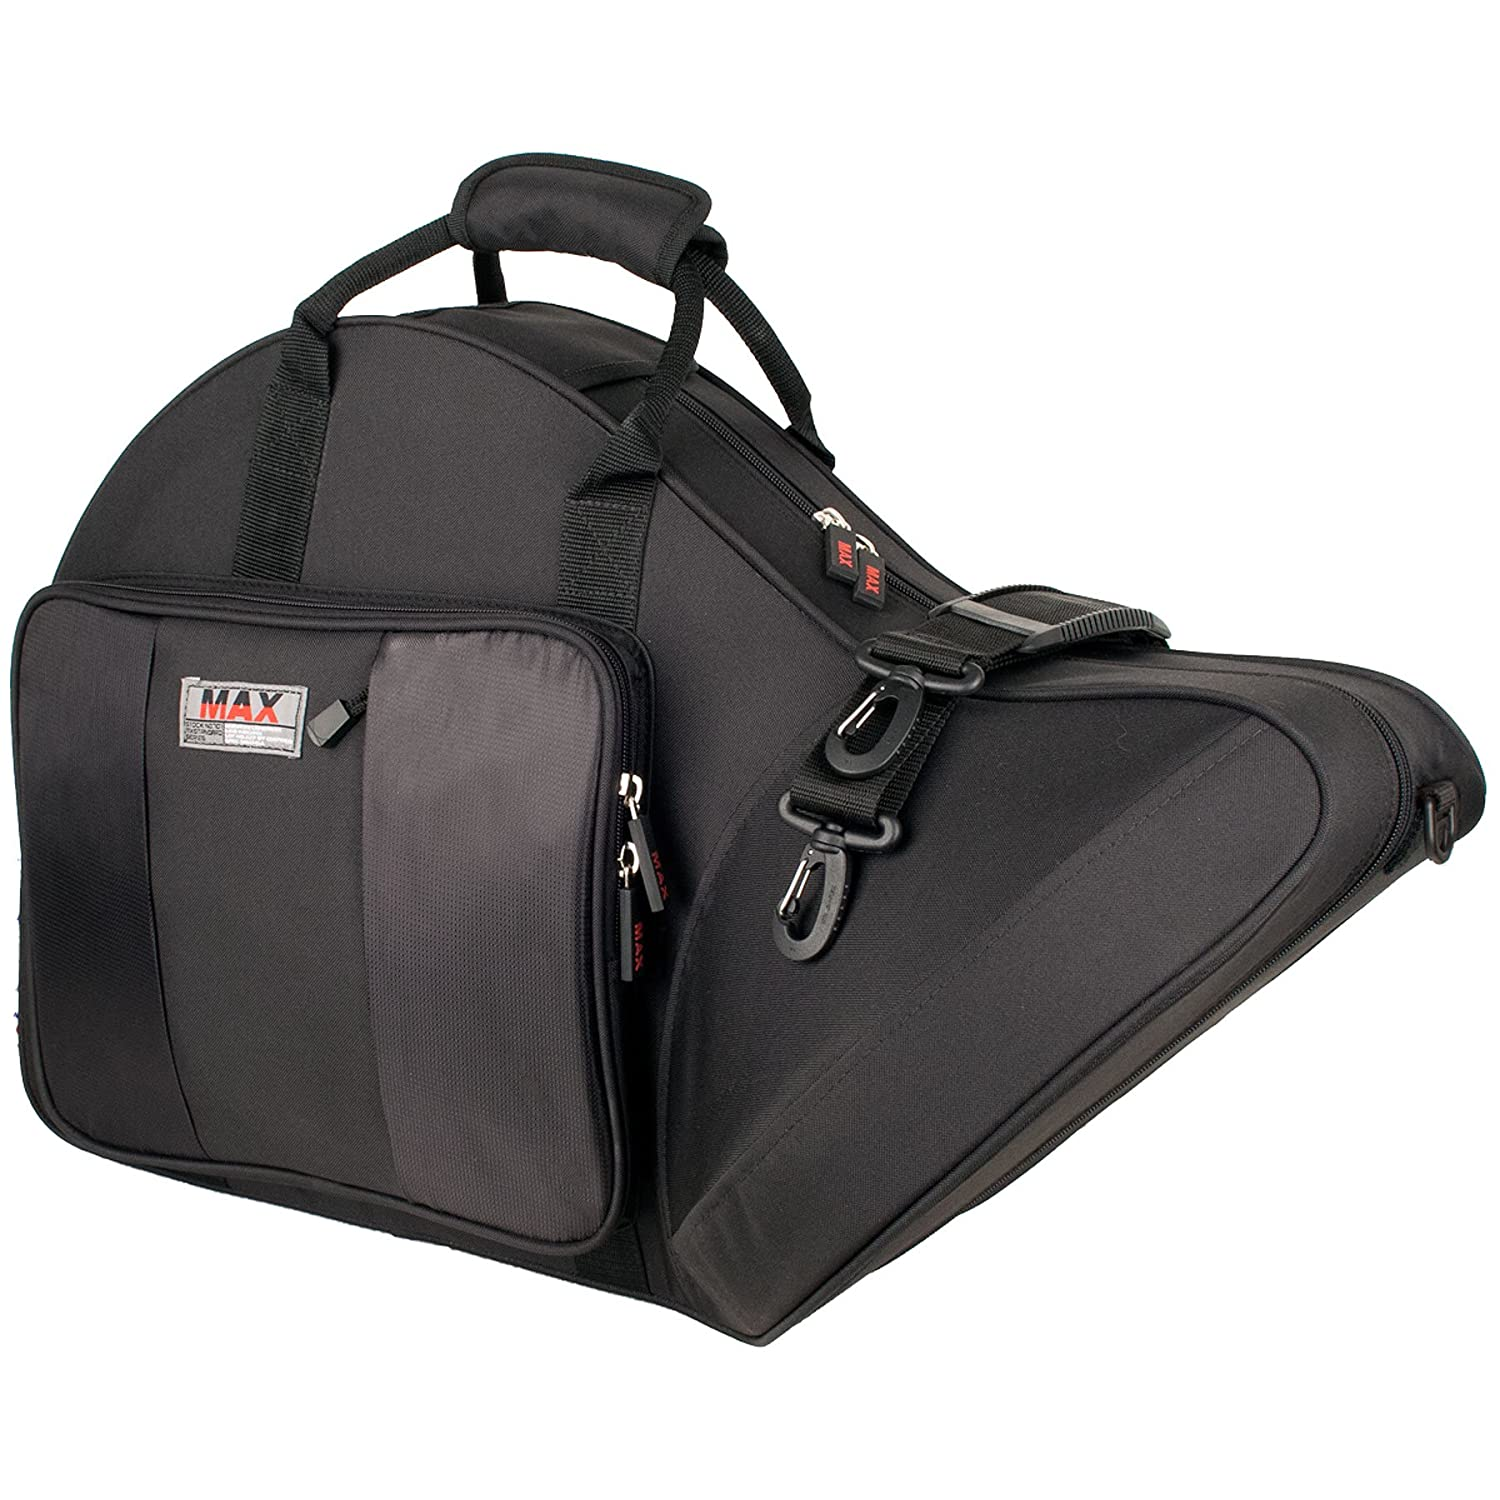 Protec MAX MX316CT Contoured French Horn Case Pro Tec